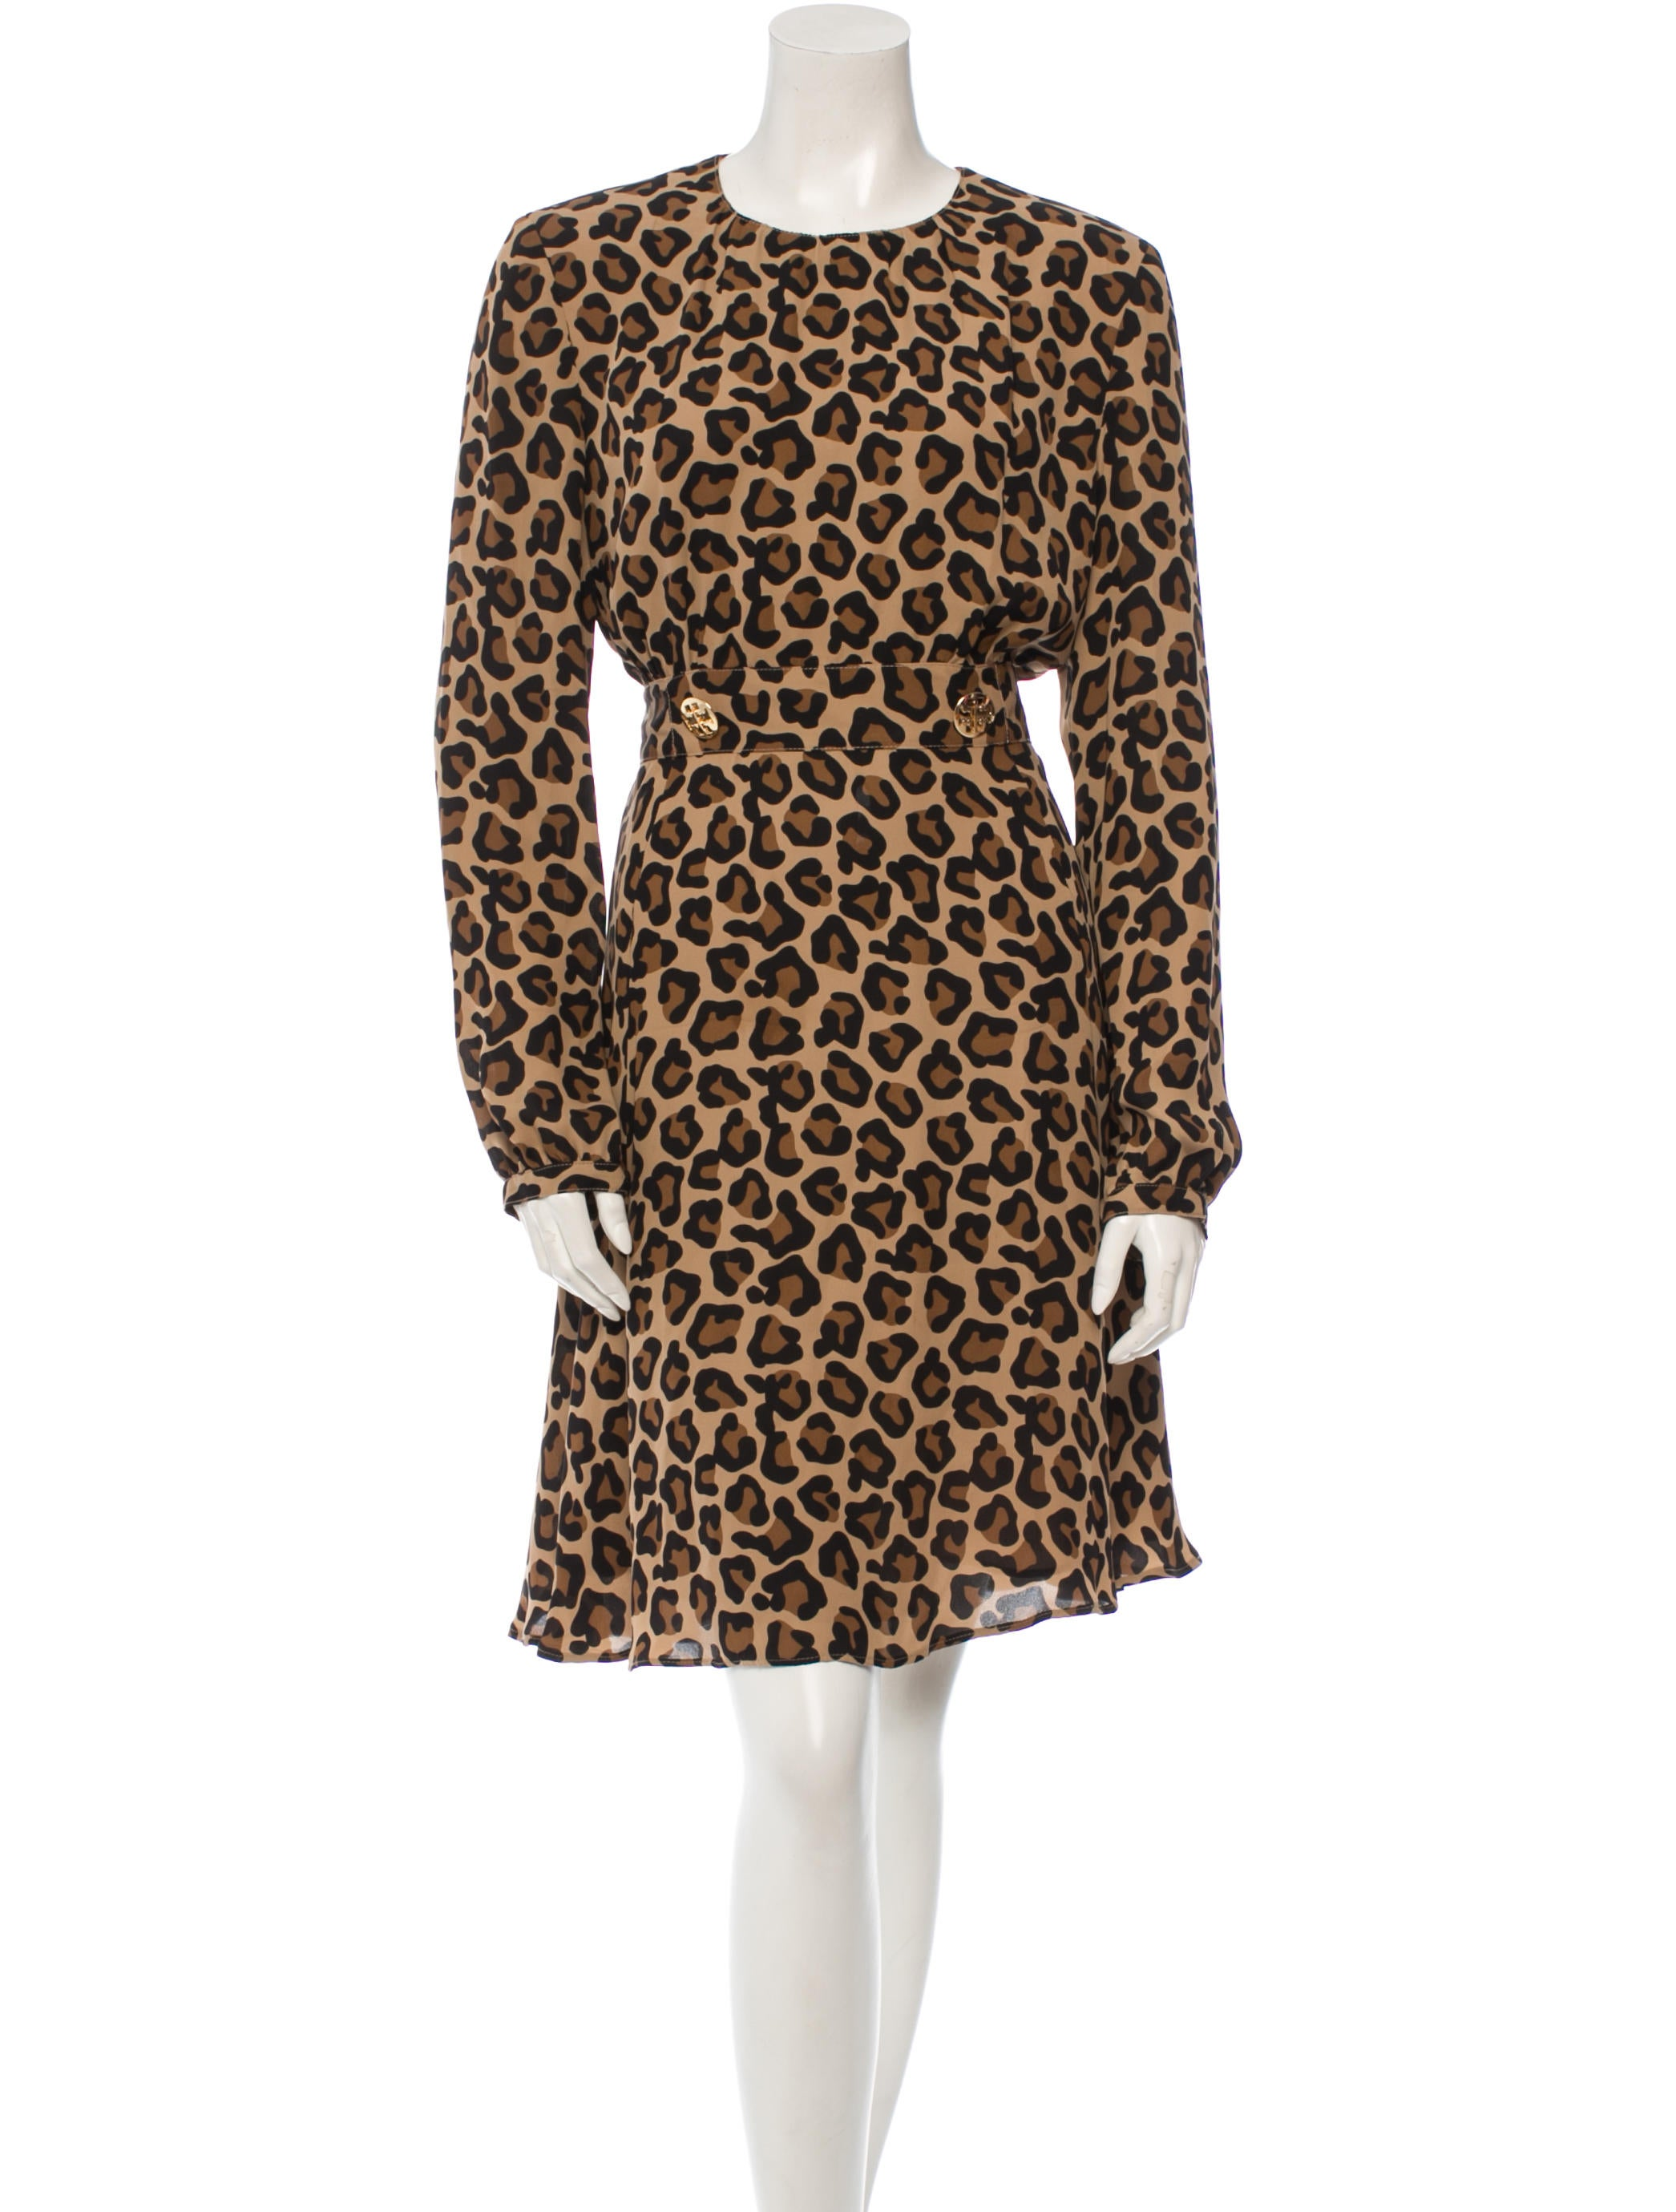 Tory Burch Animal Print Dress Clothing Wto39366 The